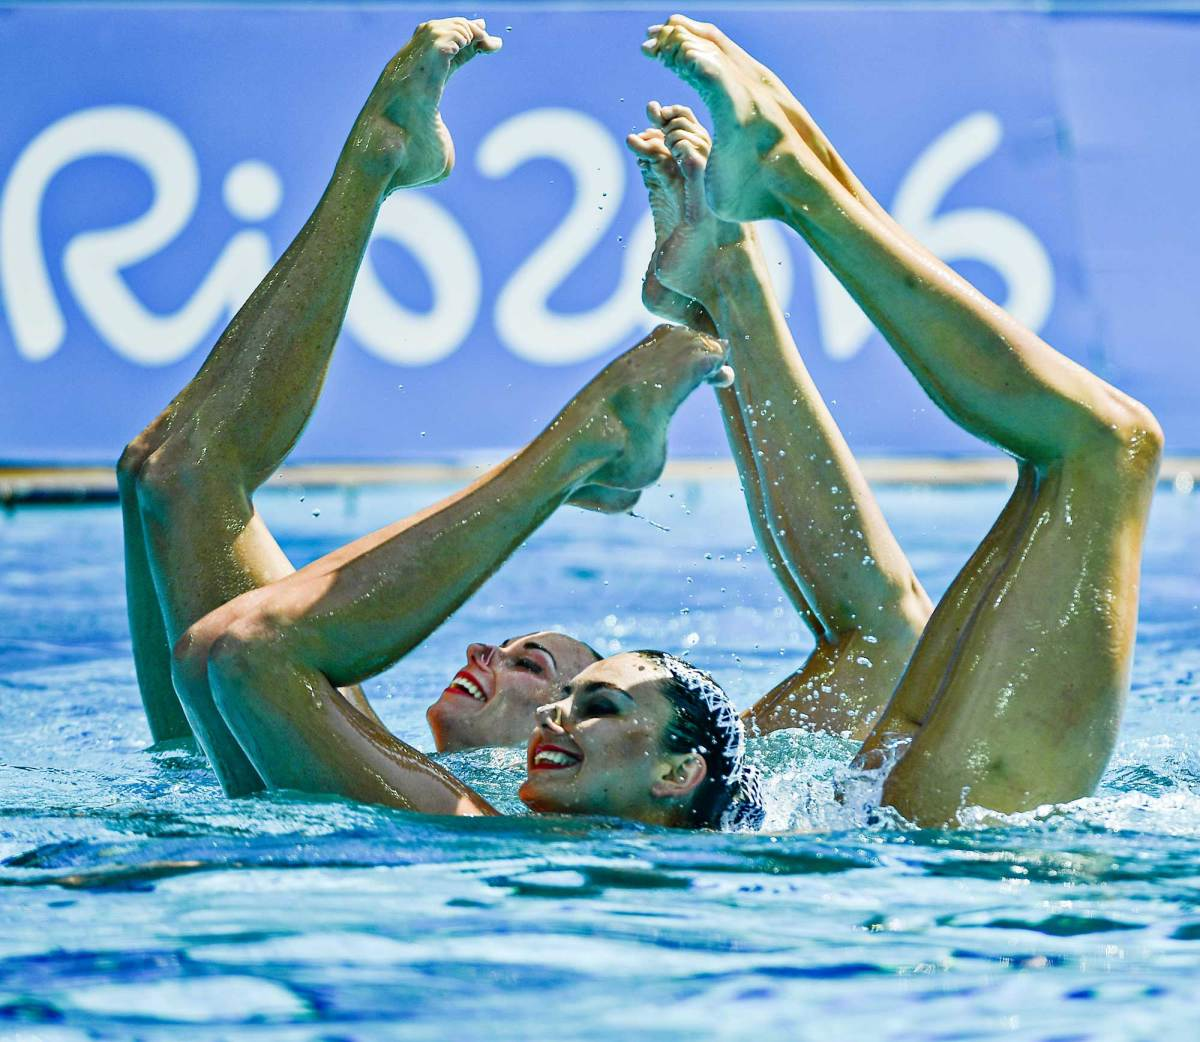 Best-photos-from-the-rio-olympic-games-si-7.jpg